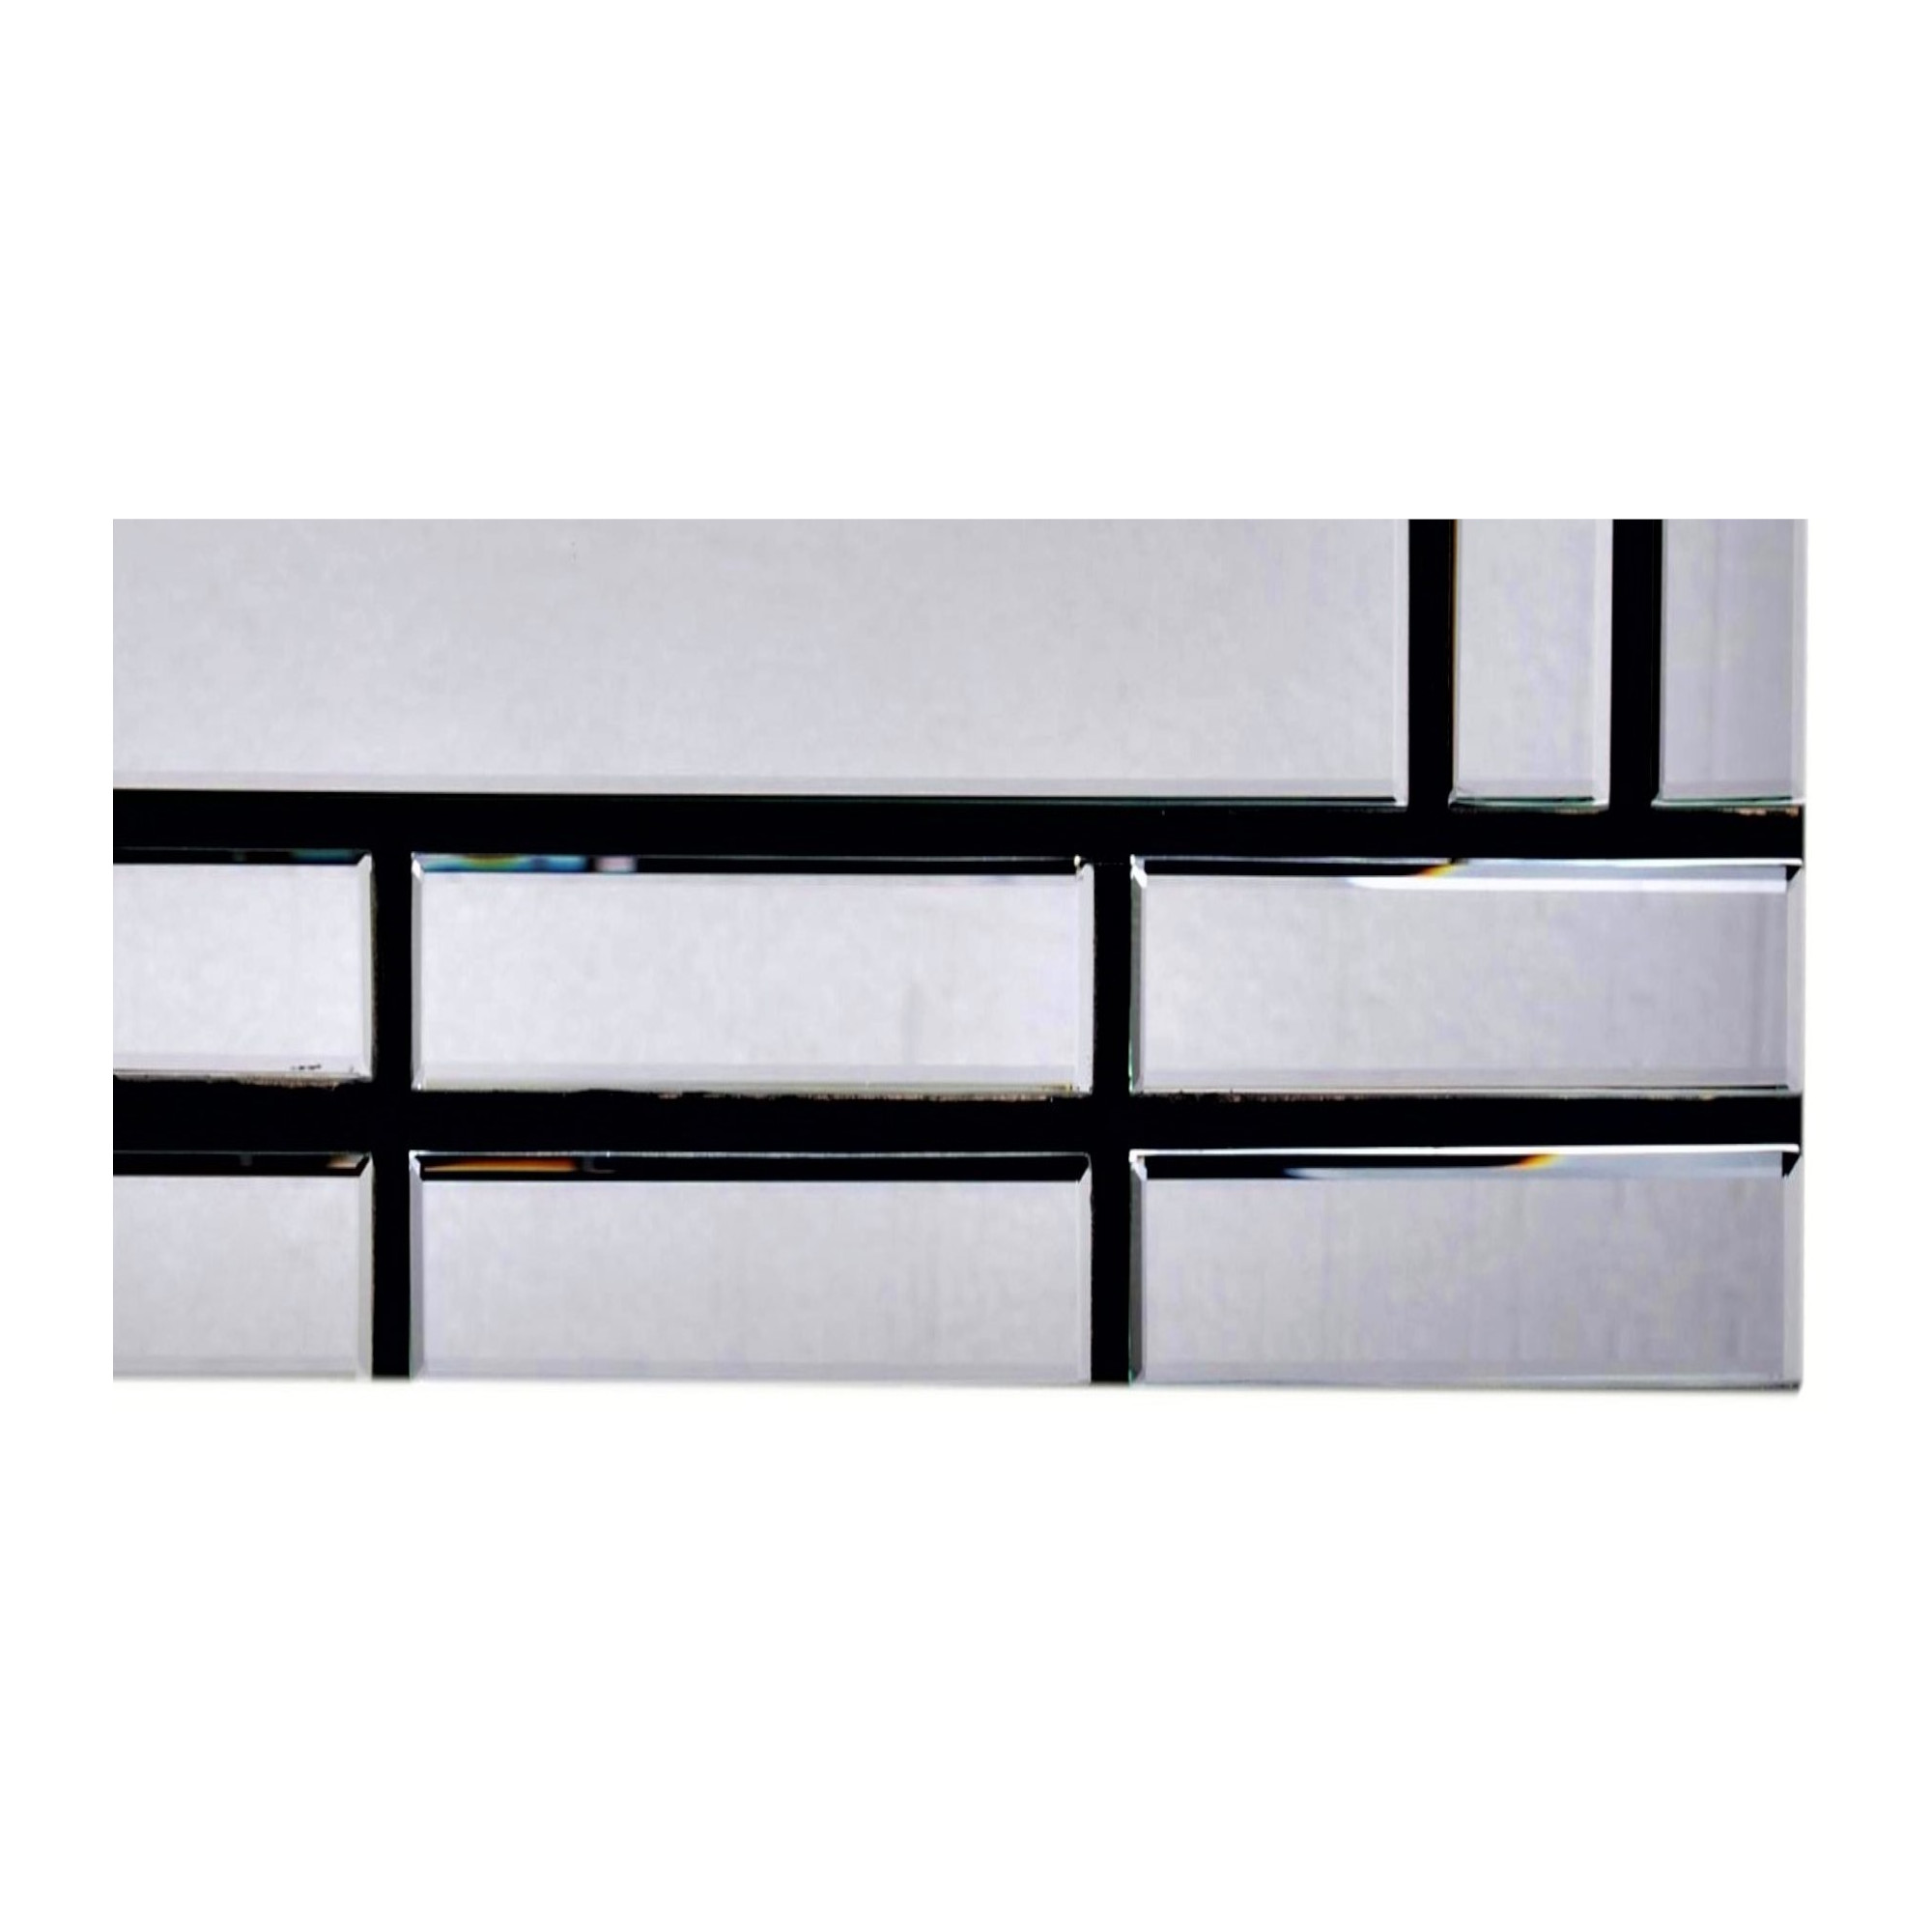 DEVINA Mirrored Wall Mirror